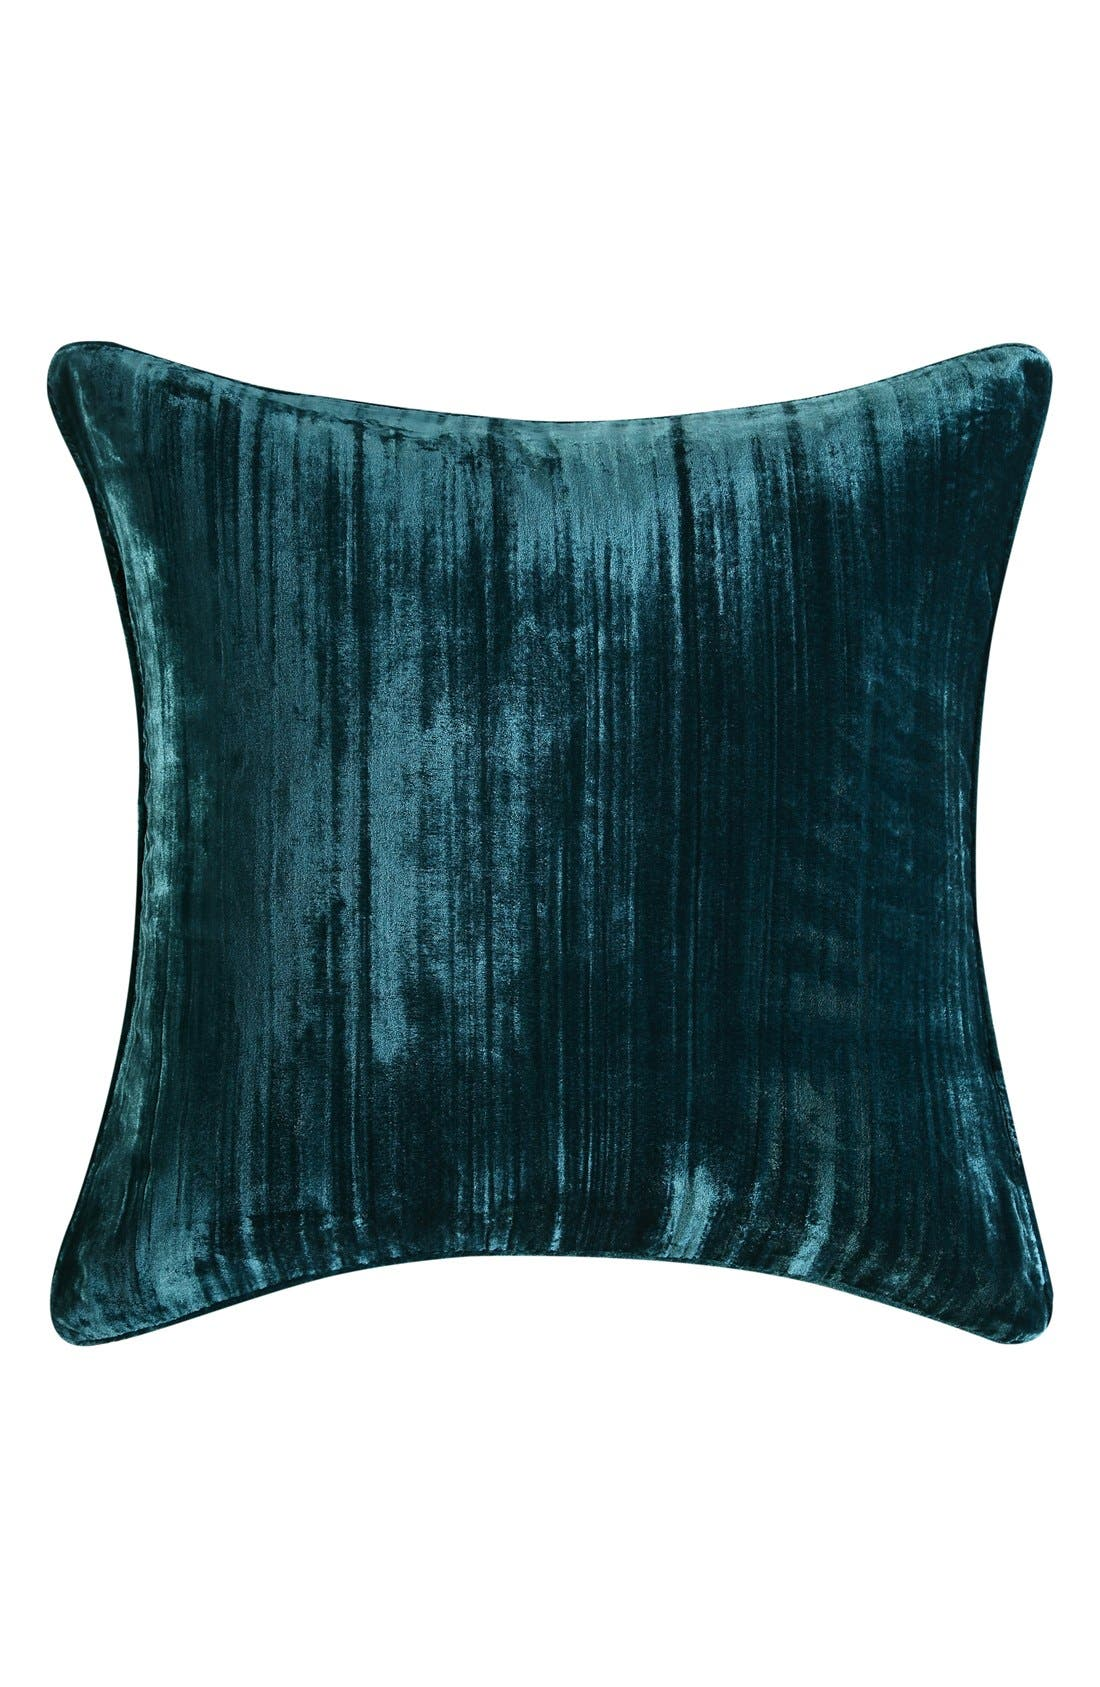 Main Image - Tracy Porter® For Poetic Wanderlust® 'Sisley' Velvet Pillow